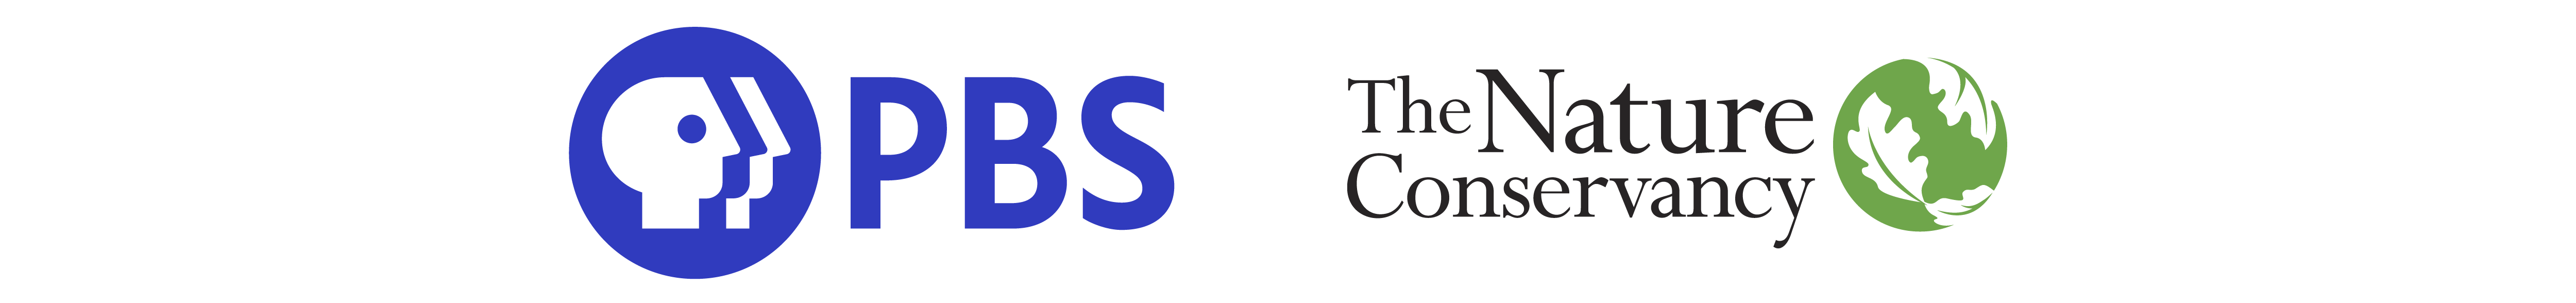 two logos, a blue PBS logo on the left and The Nature Conservancy logo on the right